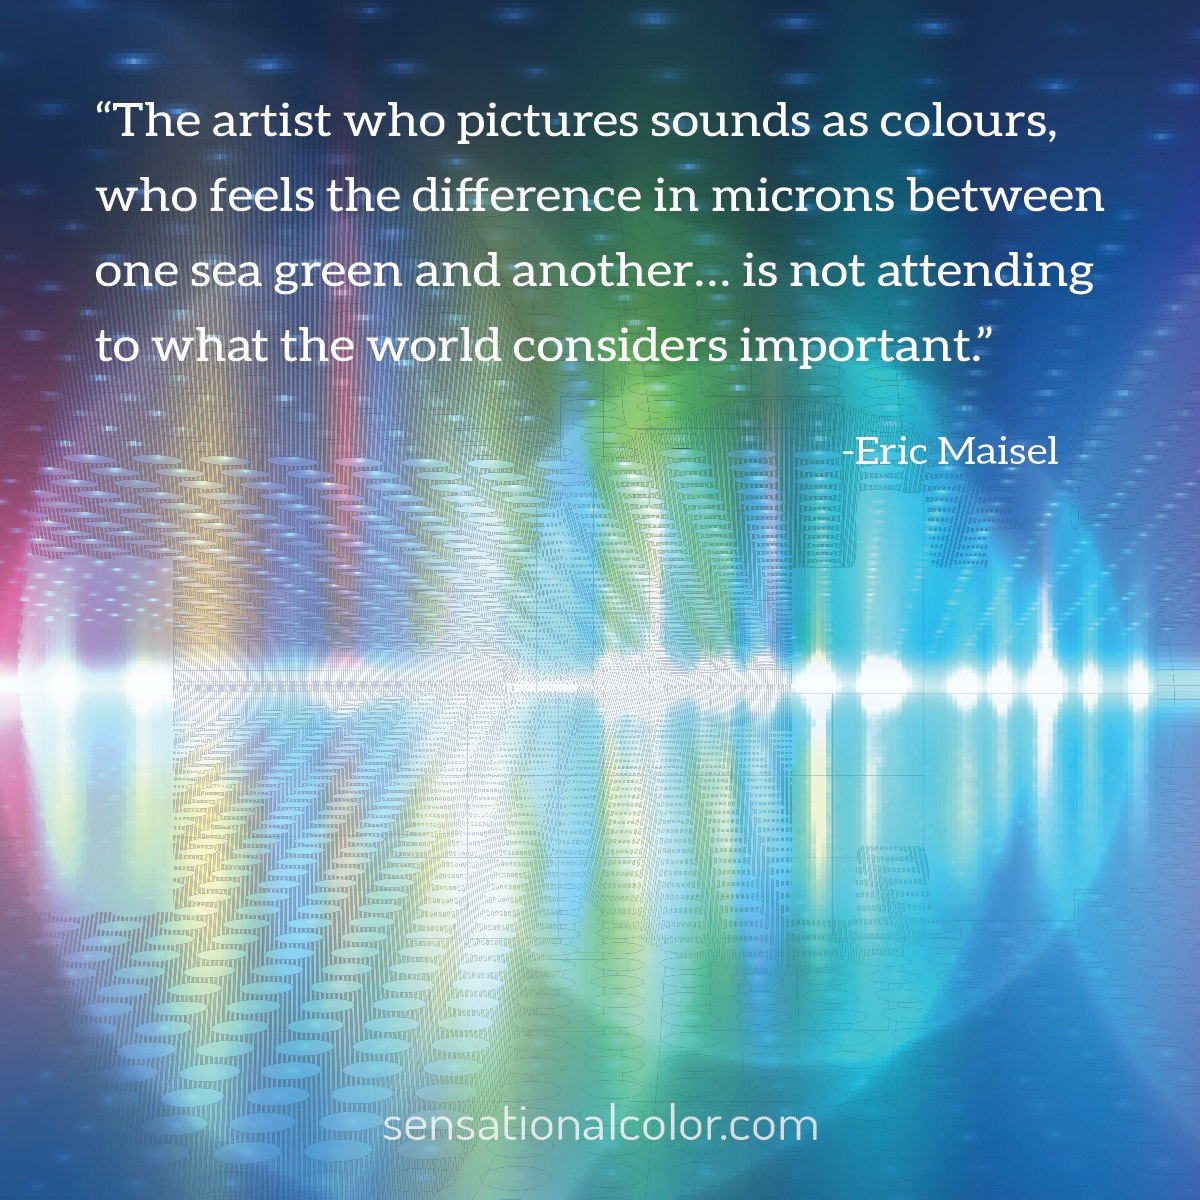 """The artist who pictures sounds as colours, who feels the difference in microns between one sea green and another… is not attending to what the world considers important."" - Eric Maisel"